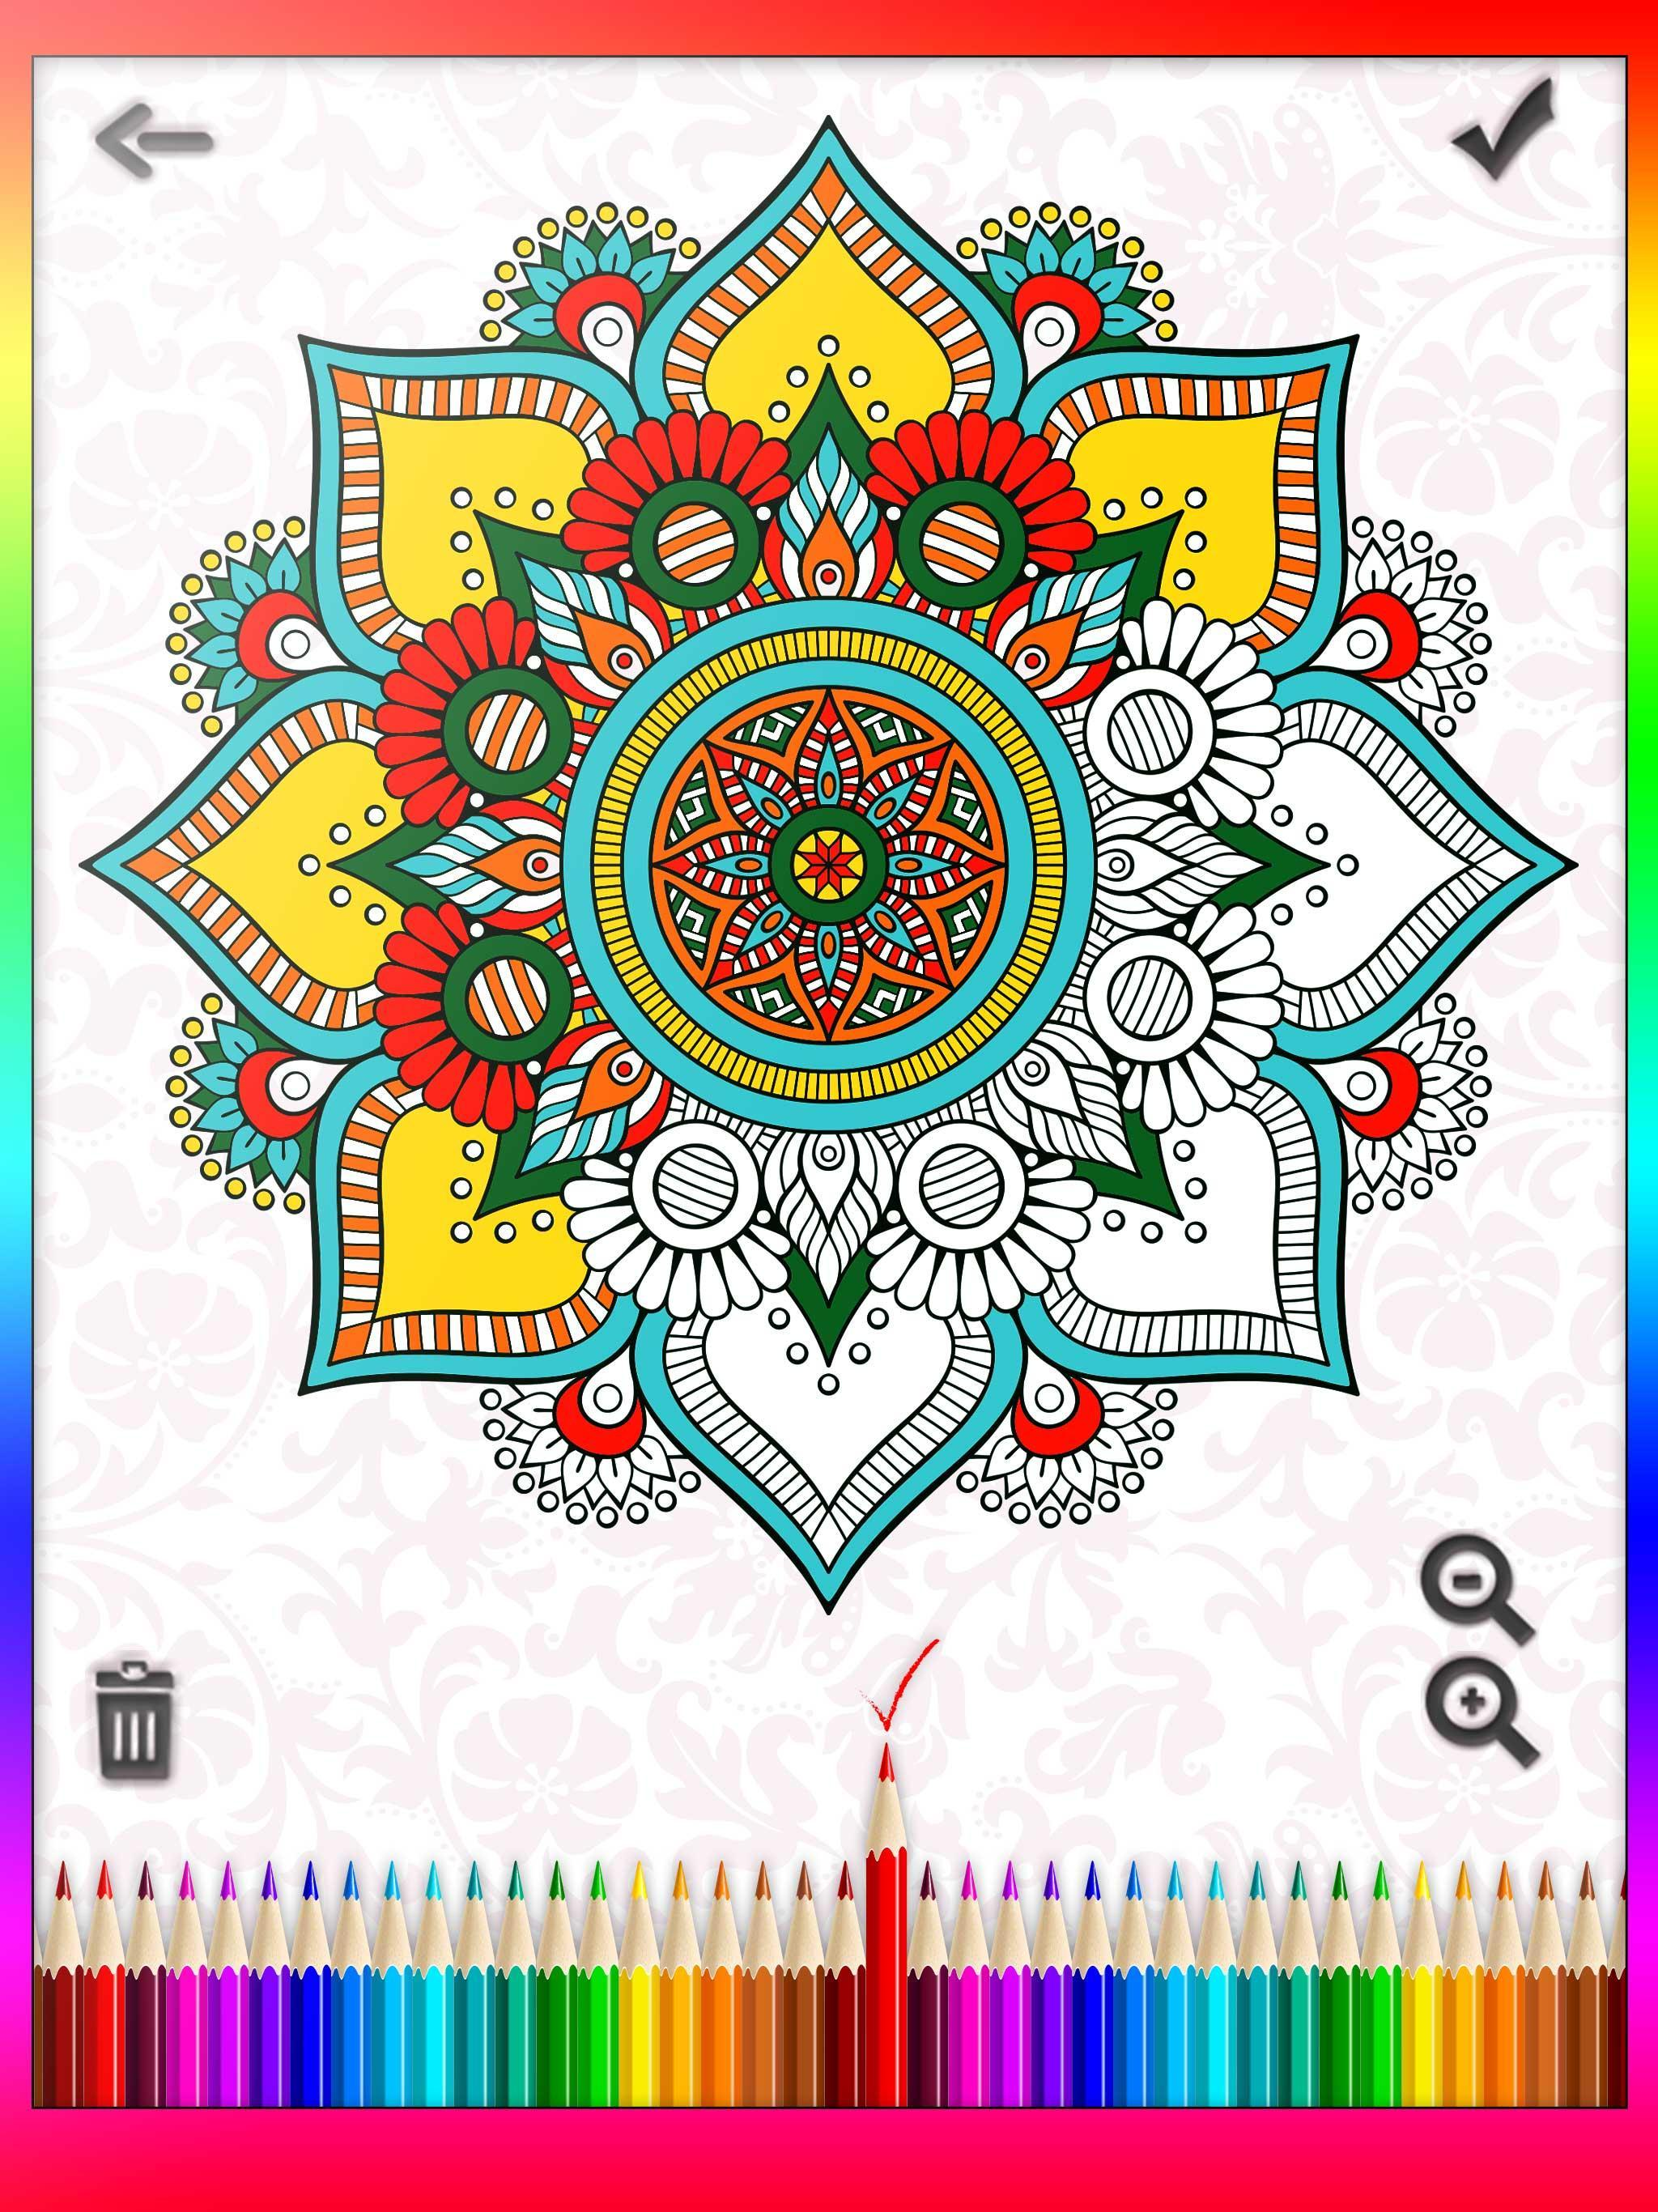 4000 Coloring Book Apkpure Free Images